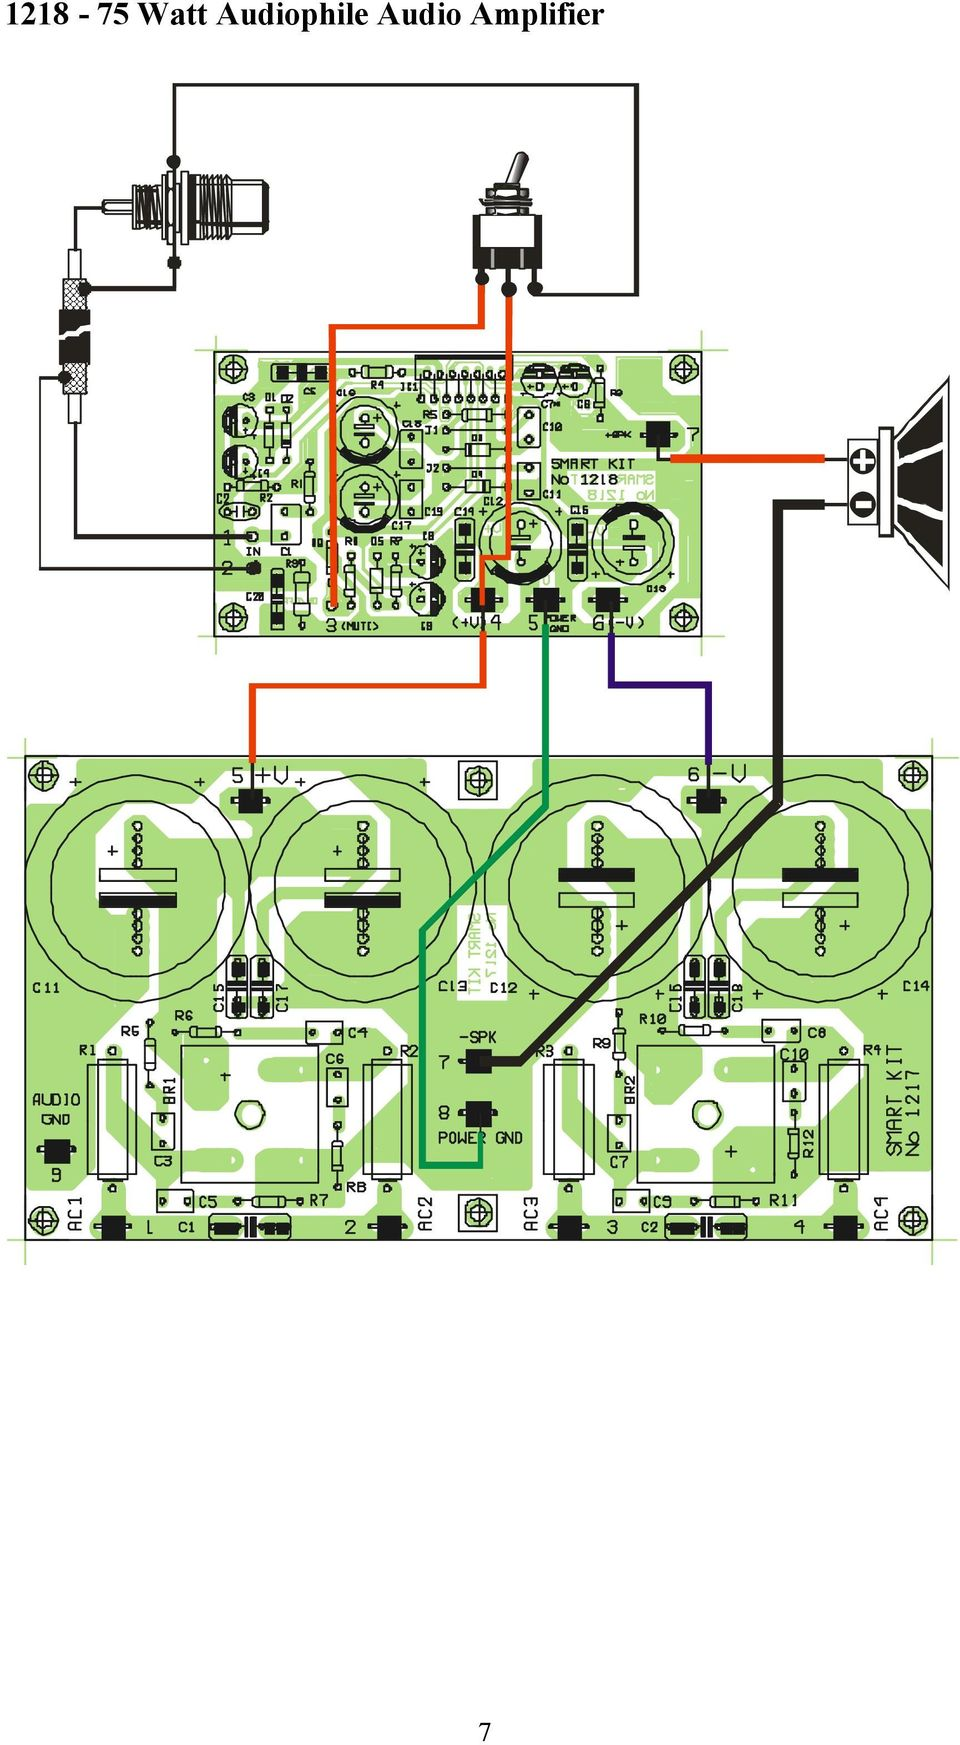 Watt Audiophile Audio Amplifier Pdf Tda2040 Car Stereo Circuit Diagram 7